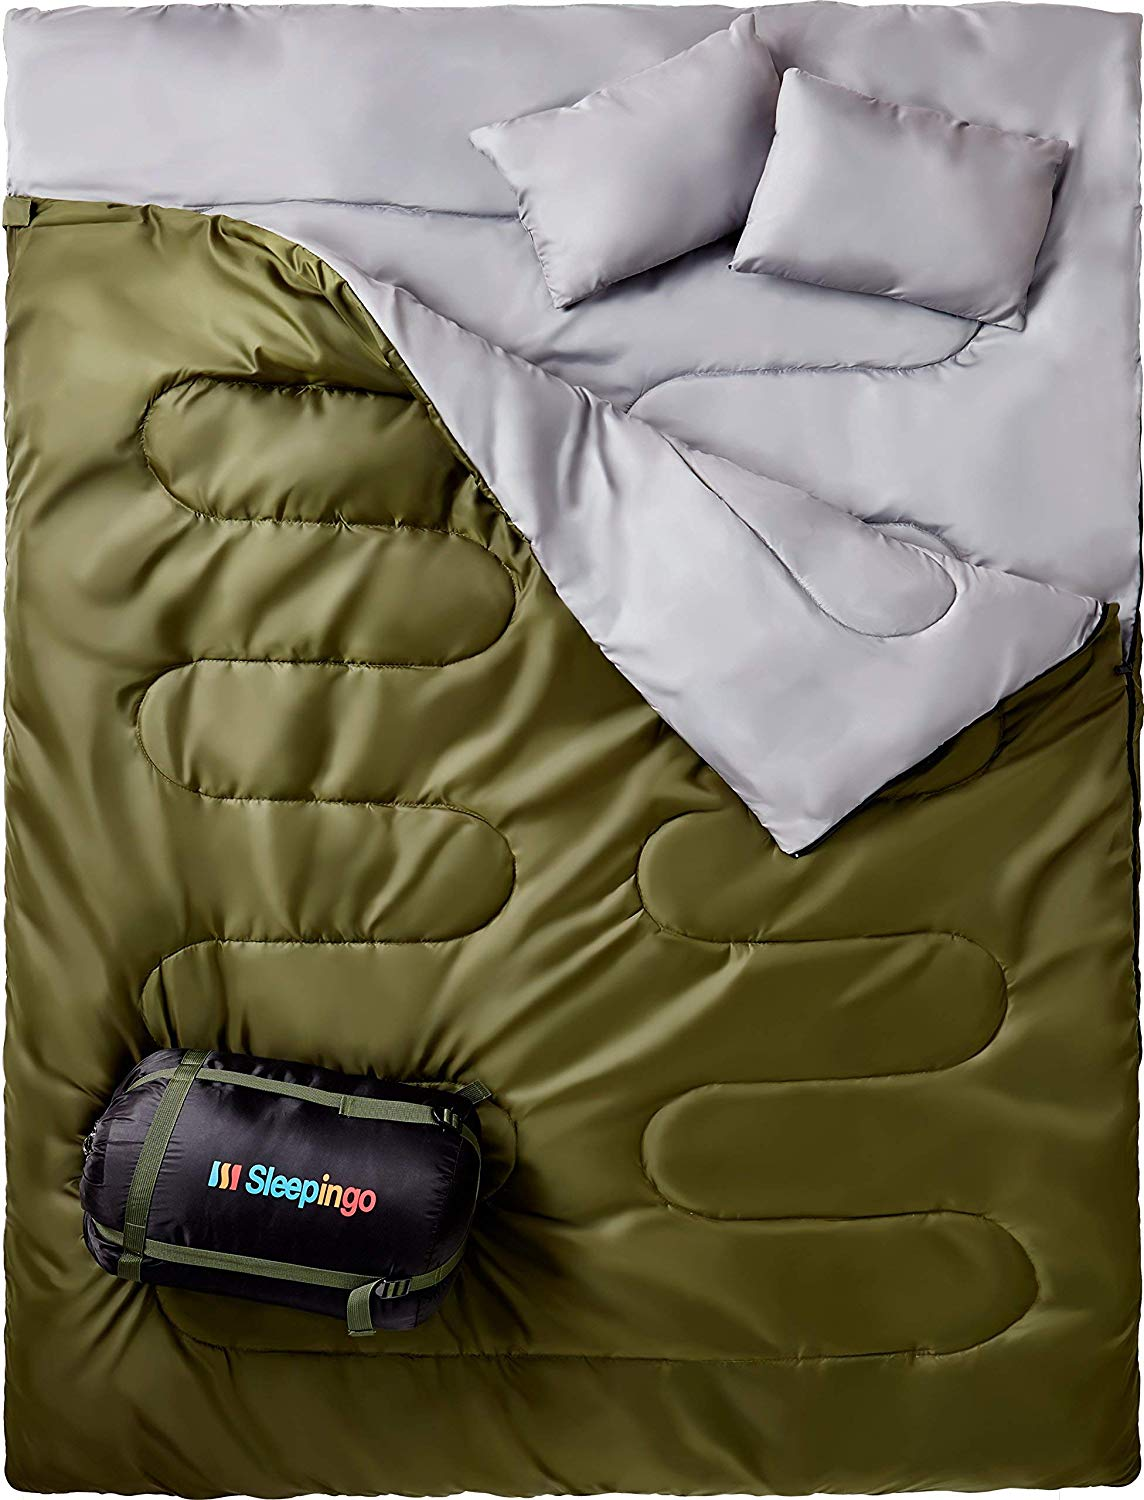 Sleepingo Best Sleeping Bags Review by www.snoremagazine.com